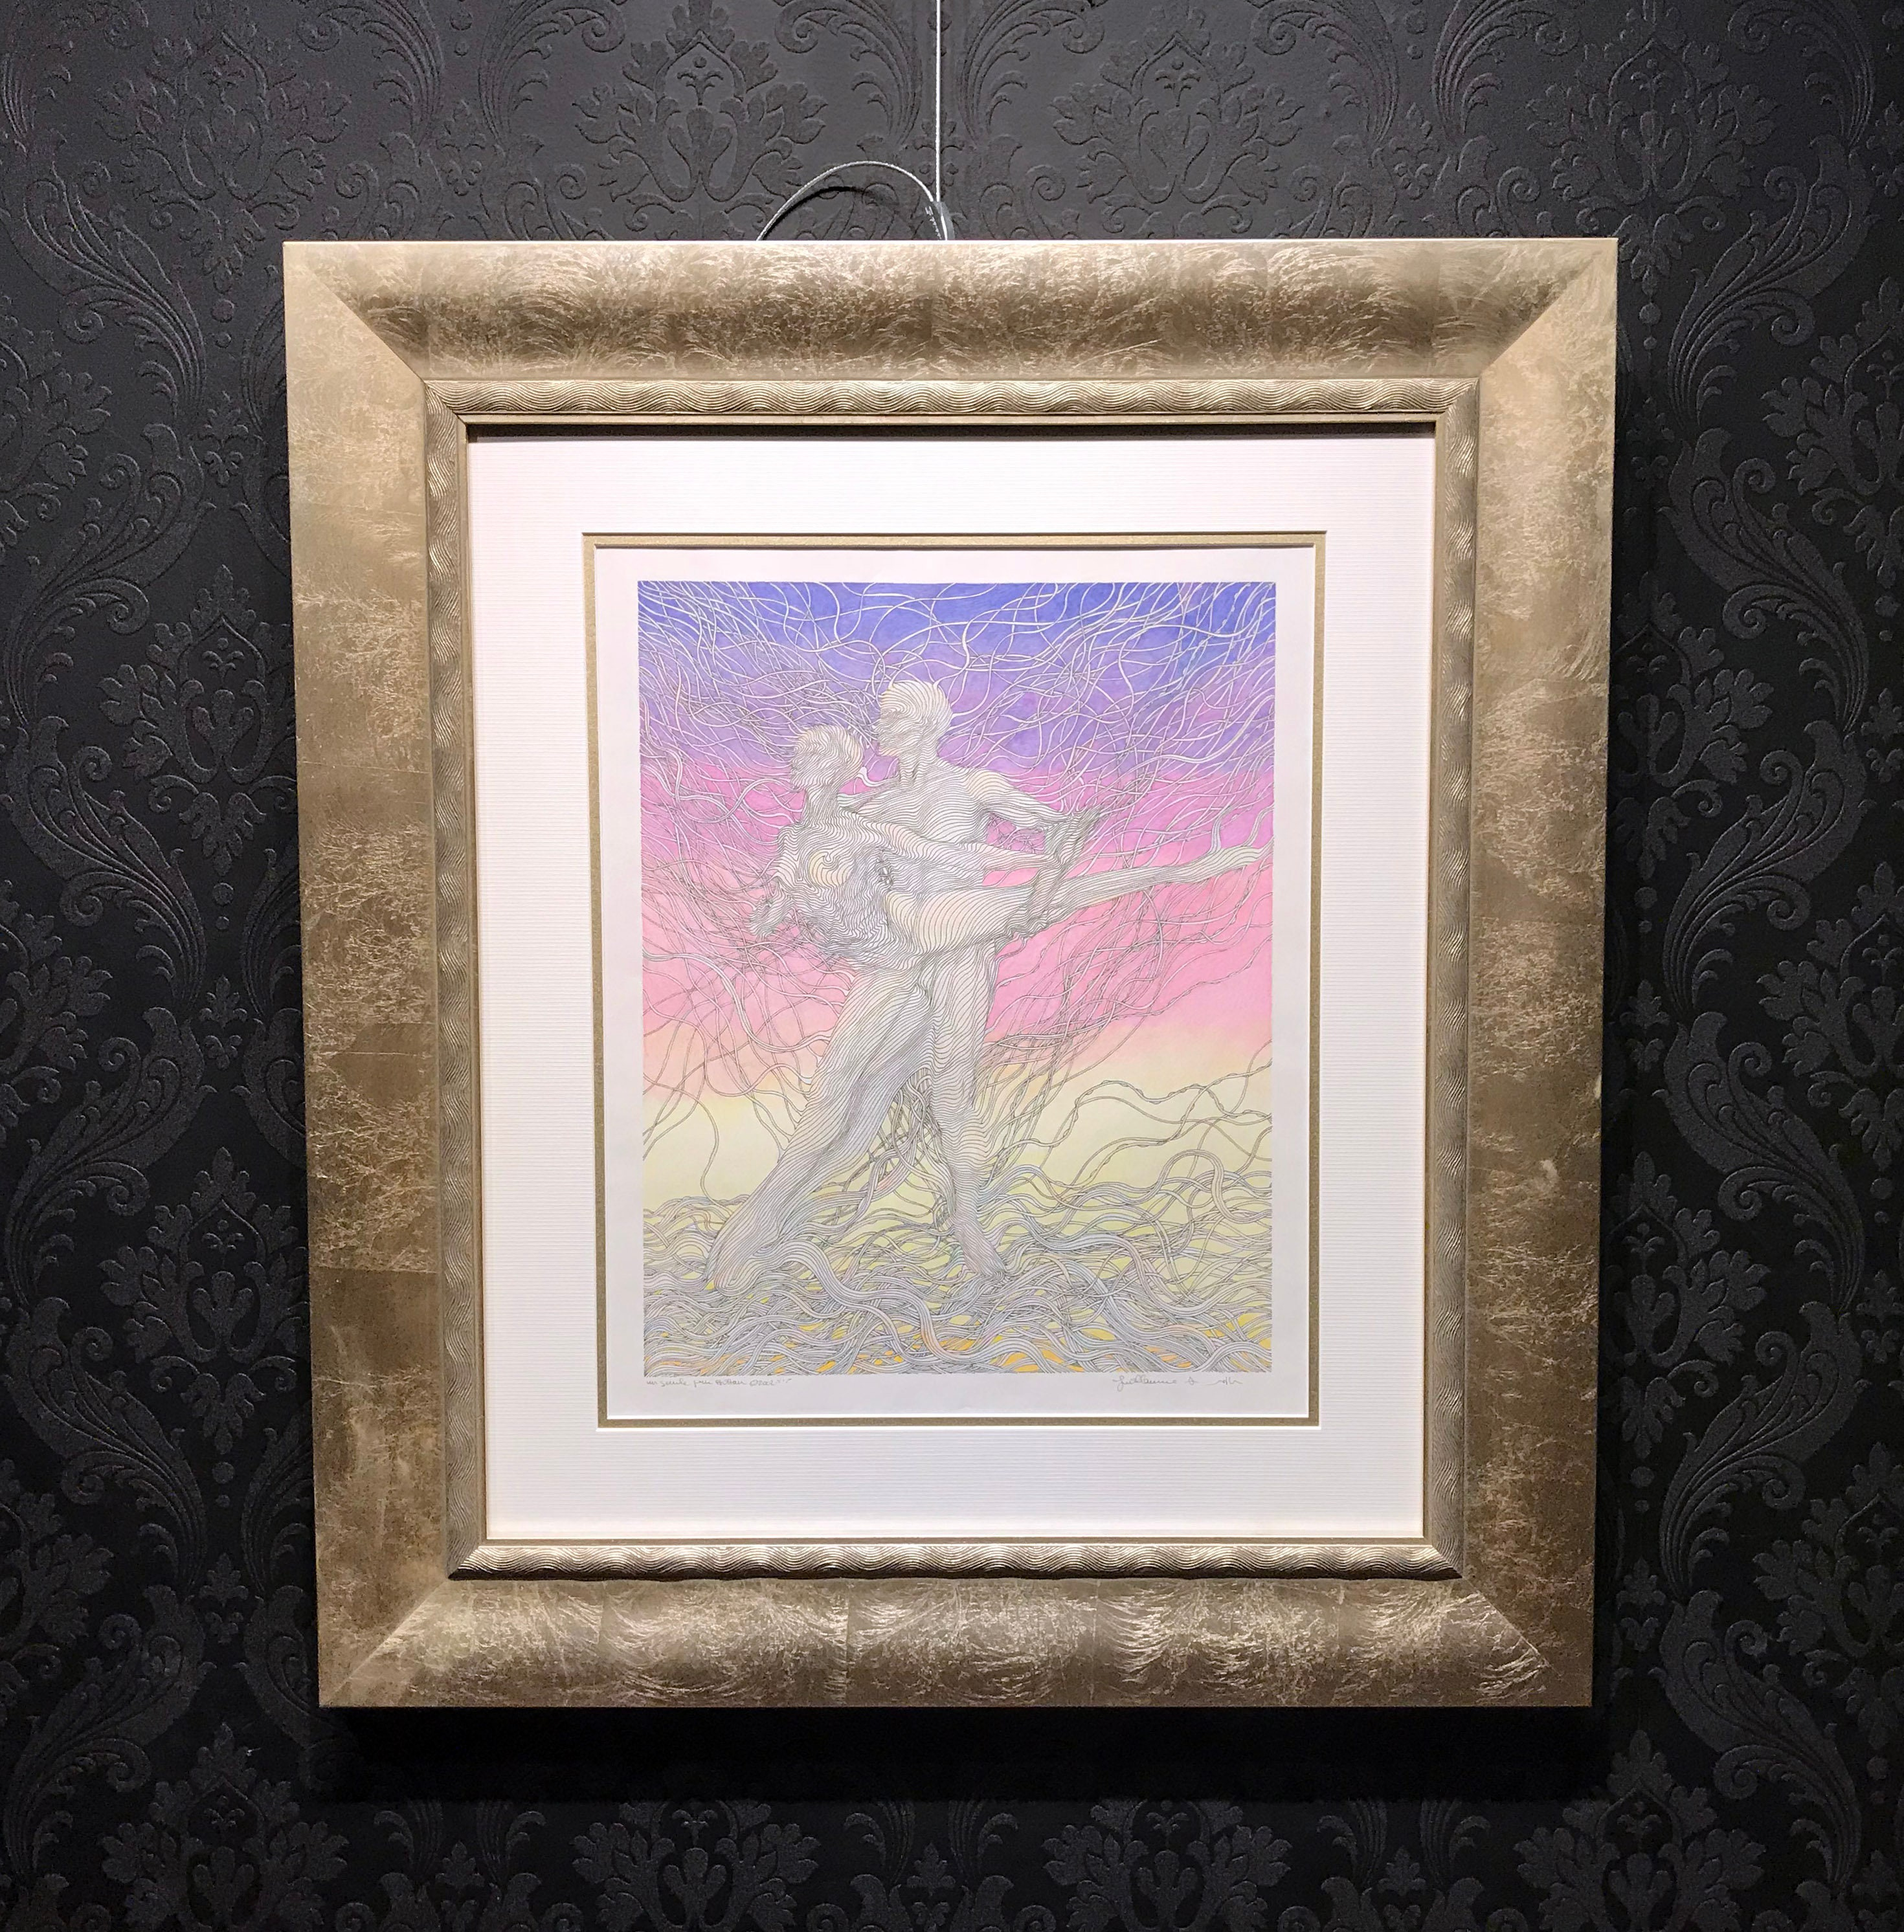 Guillaume Azoulay Original Drawing Ink And Colored Pencil